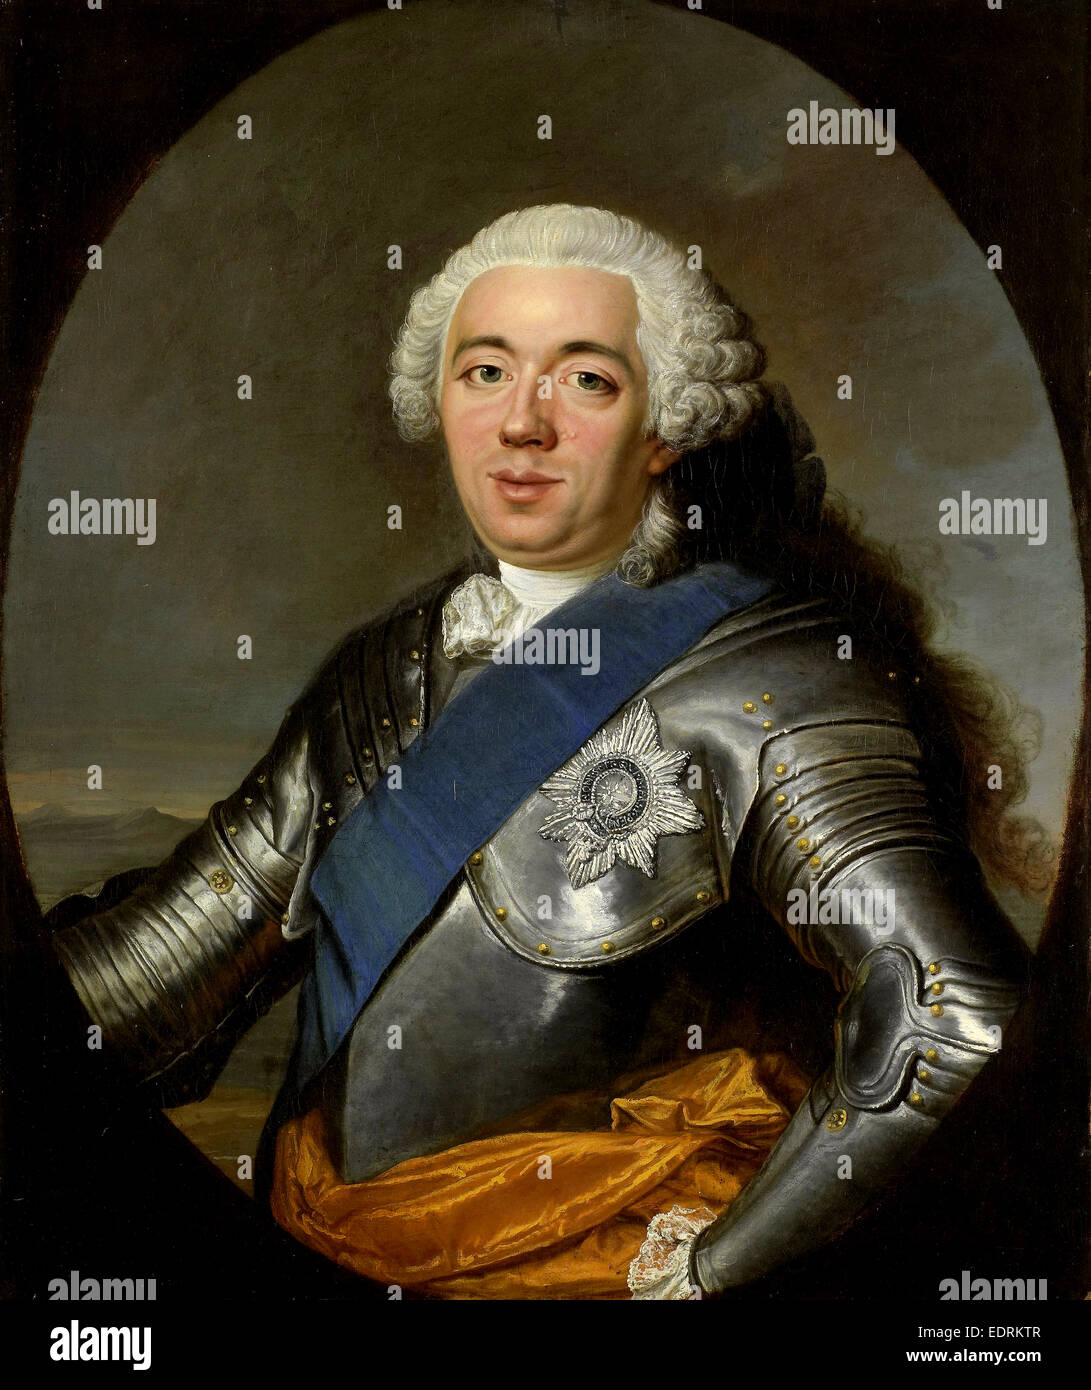 Portrait of William IV, Prince of Orange, Jacques André Joseph Camelot Aved, 1750 - 1751 Stock Photo